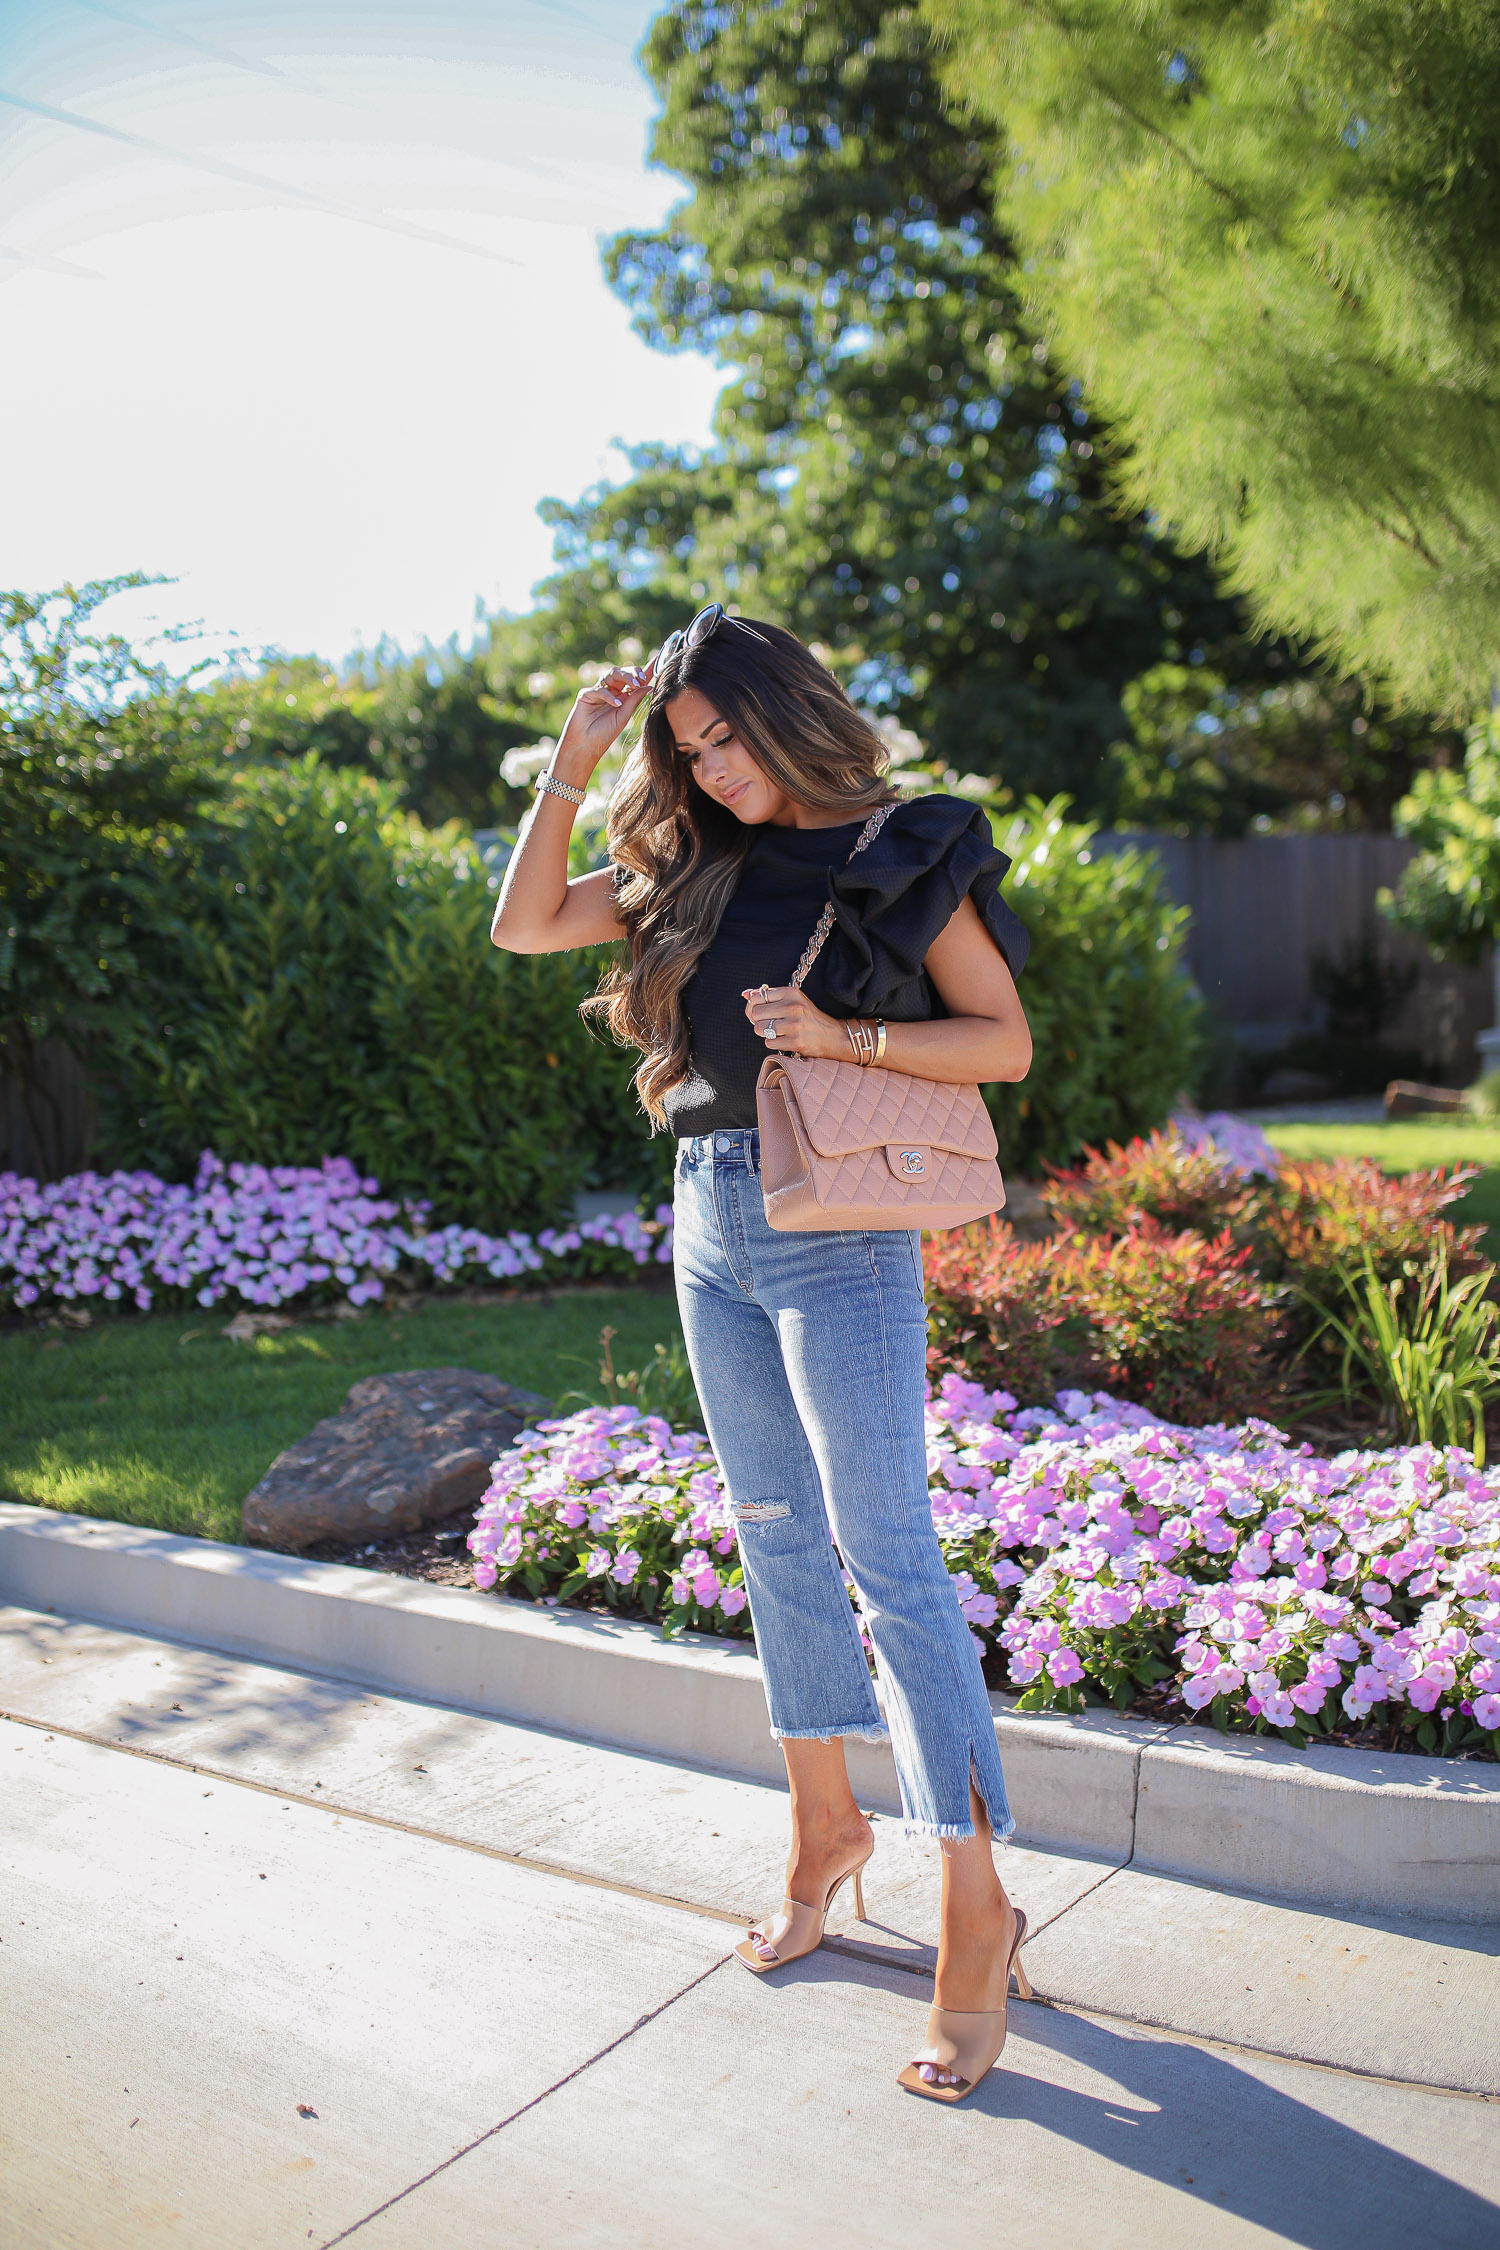 Express fashion june 2020, emily gemma, summer outfit idea pinterest 2020, best express jeans 2020, bottaga nude sandals | Date Night Outfit by popular US fashion blog, The Sweetest Thing: image of Emil Gemma wearing a Express Textured Jacquard Ruffle Sleeve Top, Express High Waisted Denim Perfect Frayed Cropped Flare Jeans, Express Thick Hoop Earrings, Bottega Veneta nude heel sandals, Cartier bracelets, BP. sunglasses, and holding a Chanel bag.